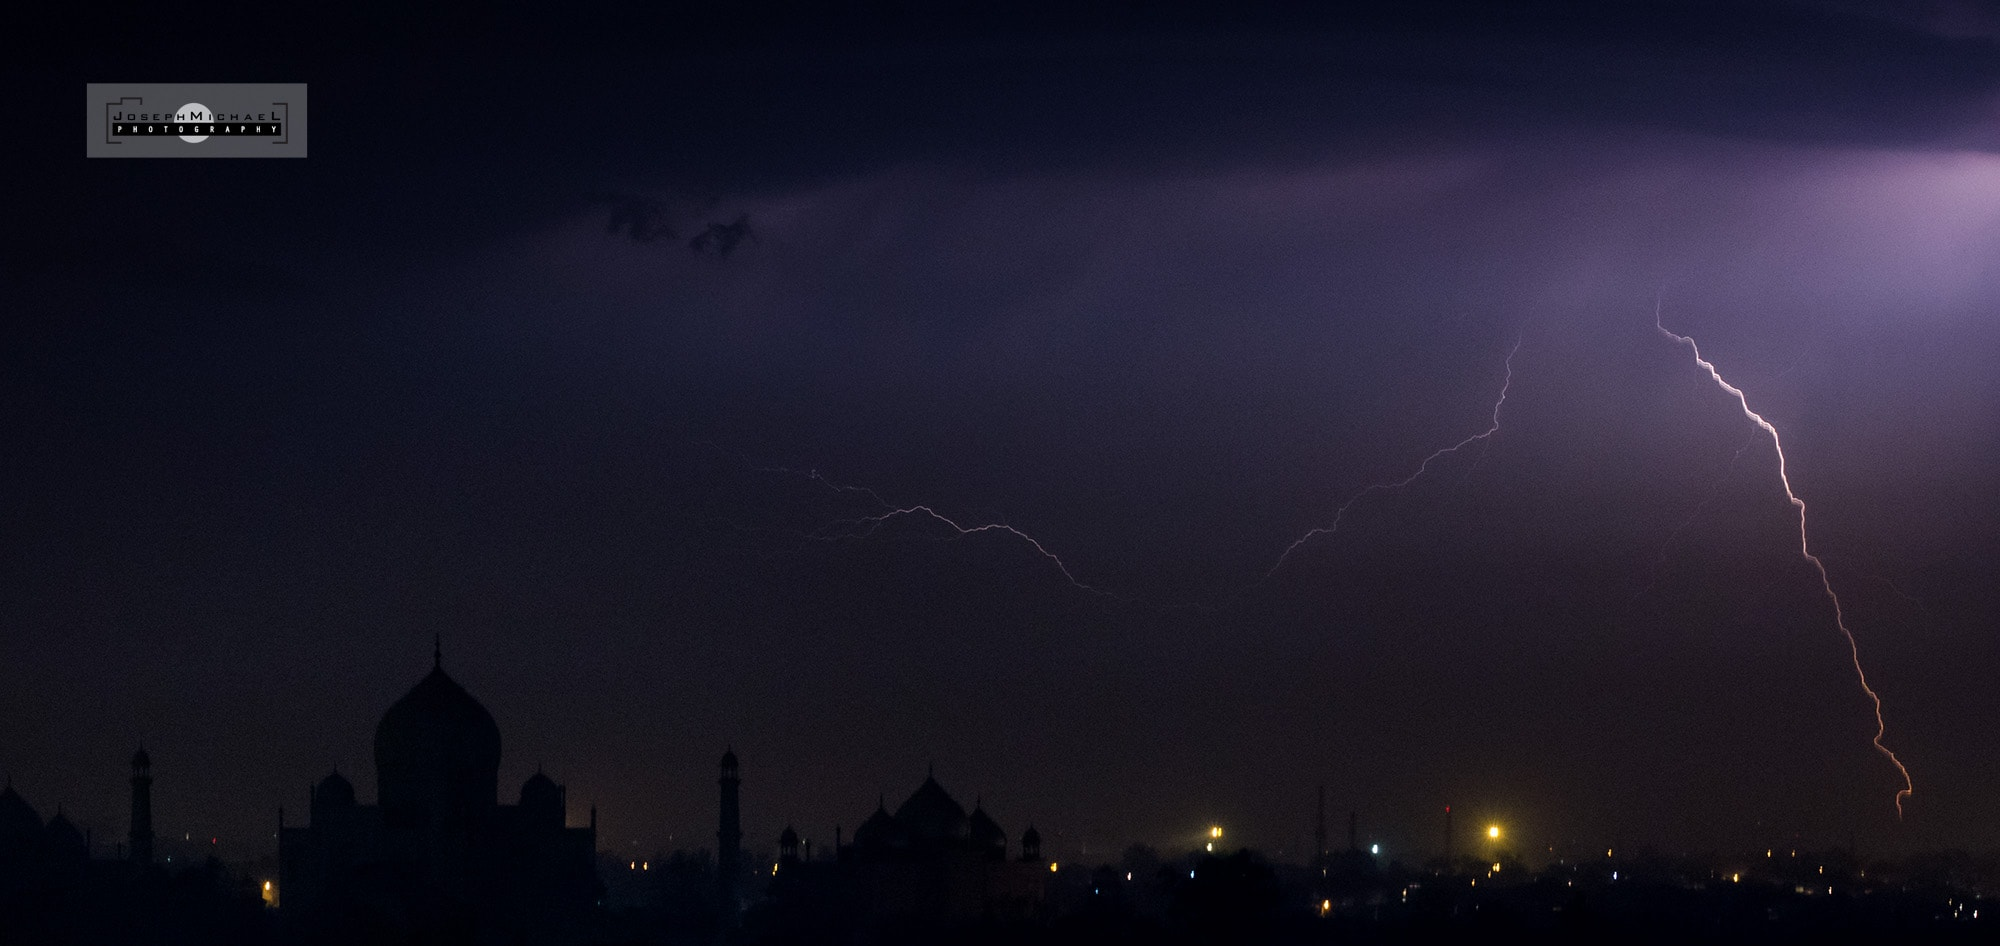 Lightning Striking near the Taj Mahal